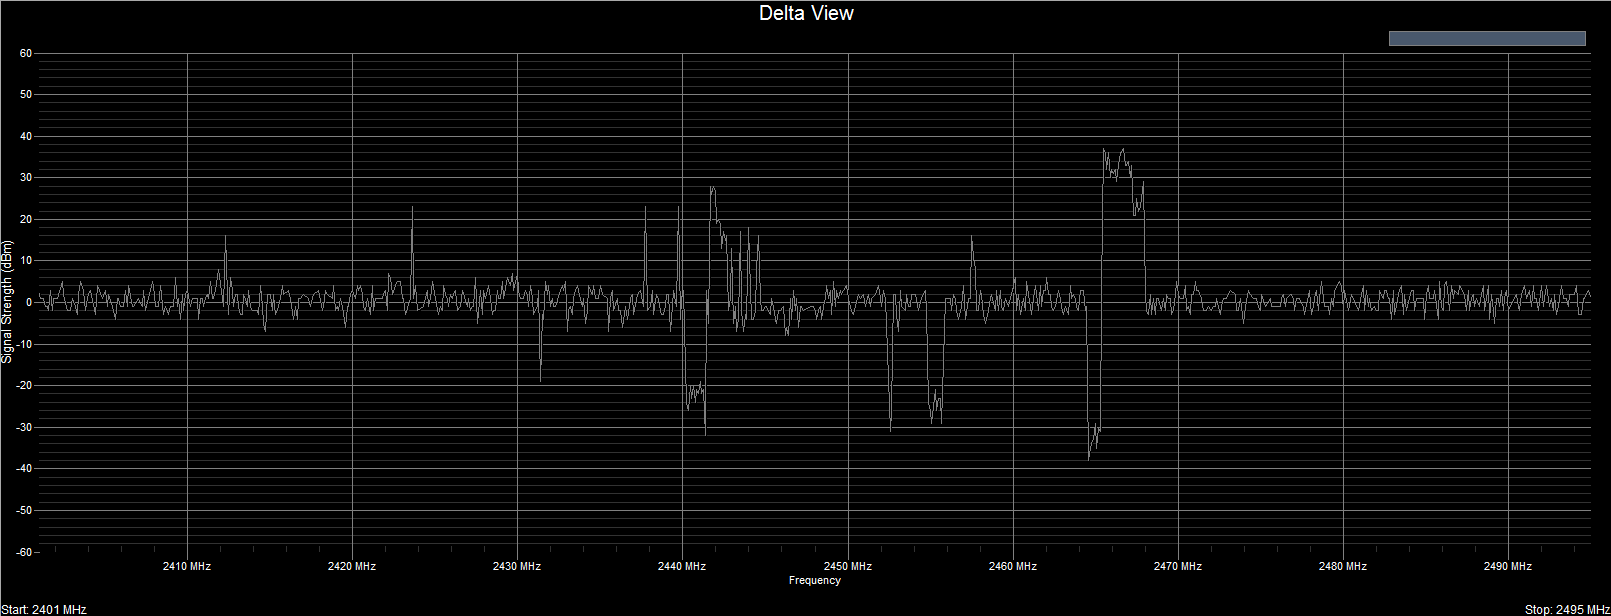 WiFi Surveyor -- Delta Trace